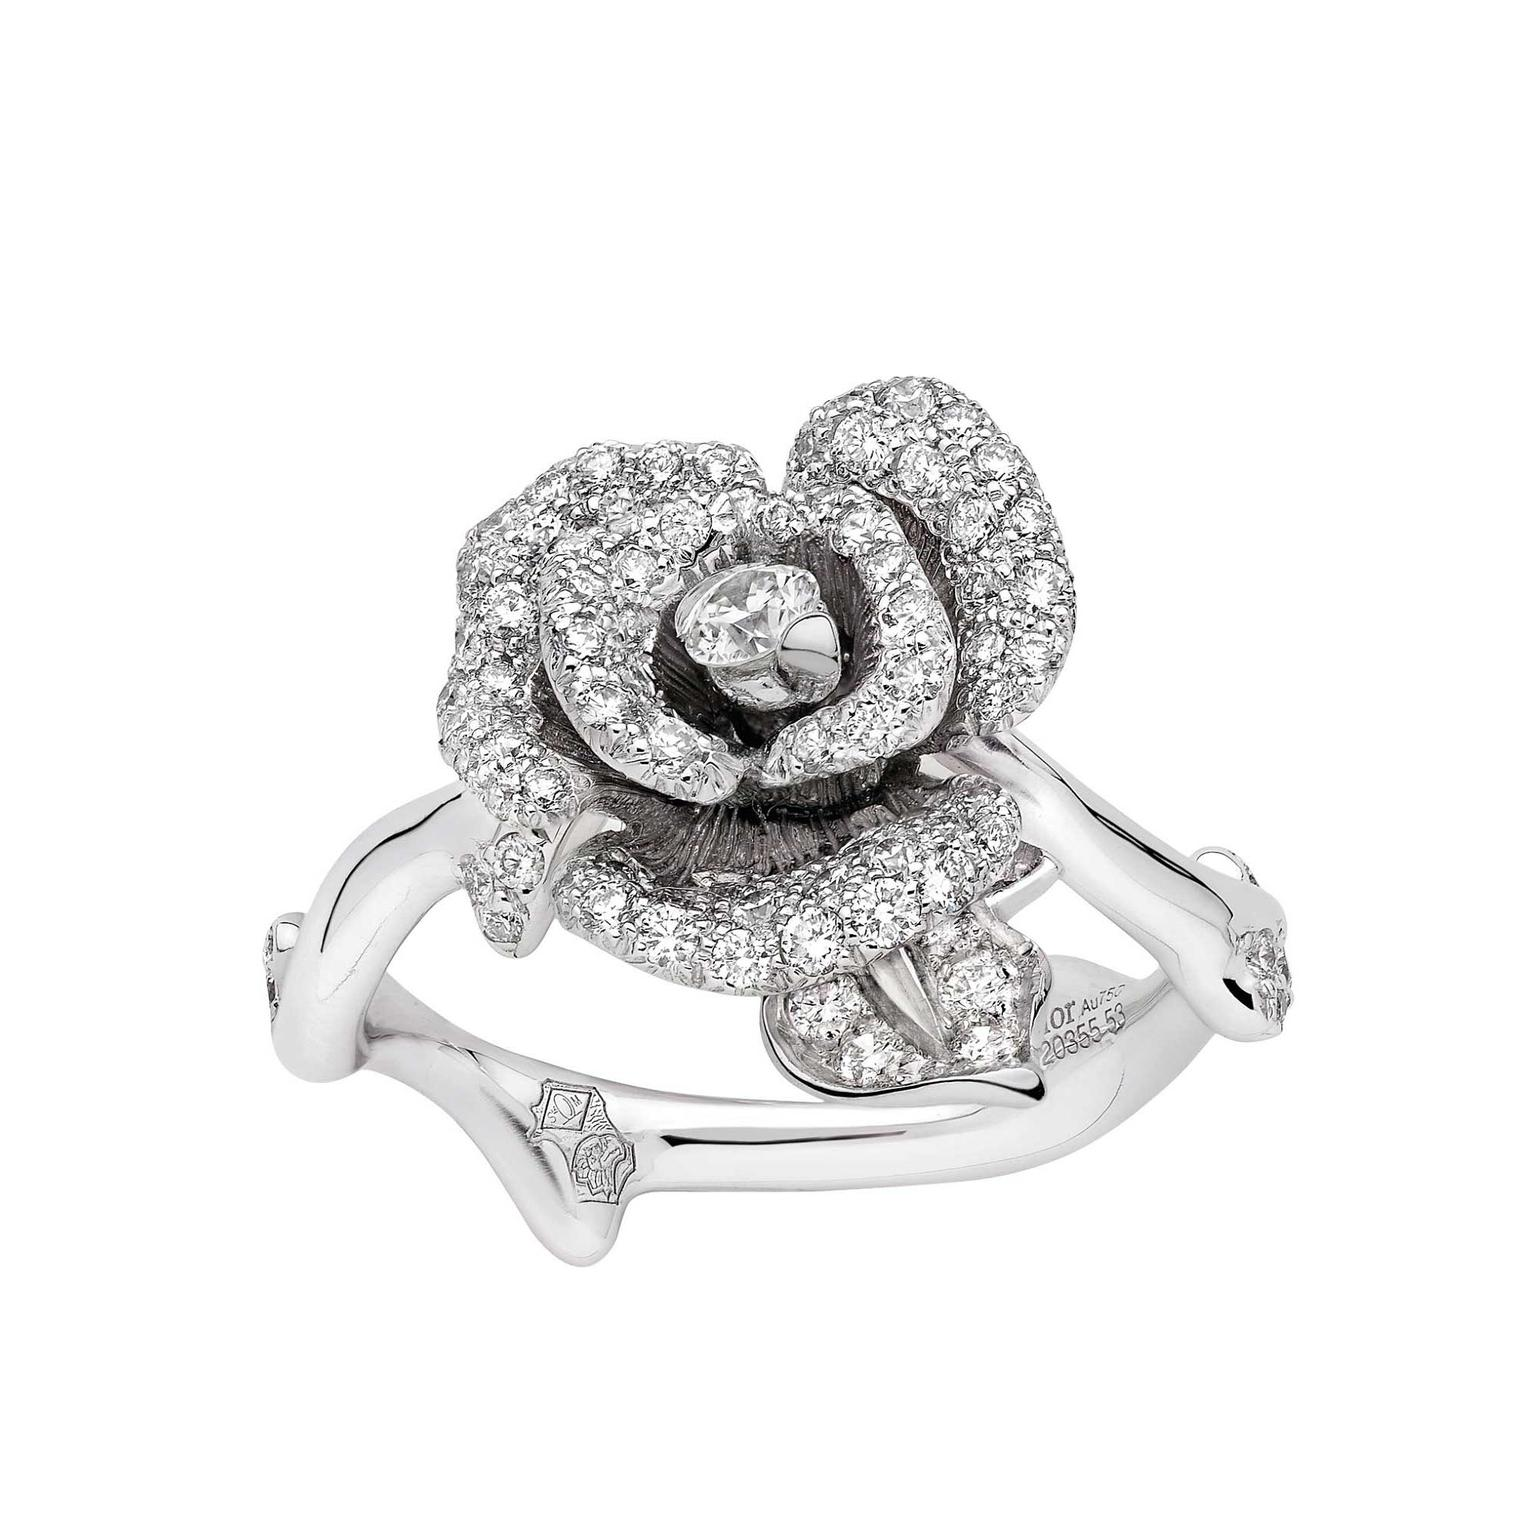 Dior Bagatelle engagement ring in white gold